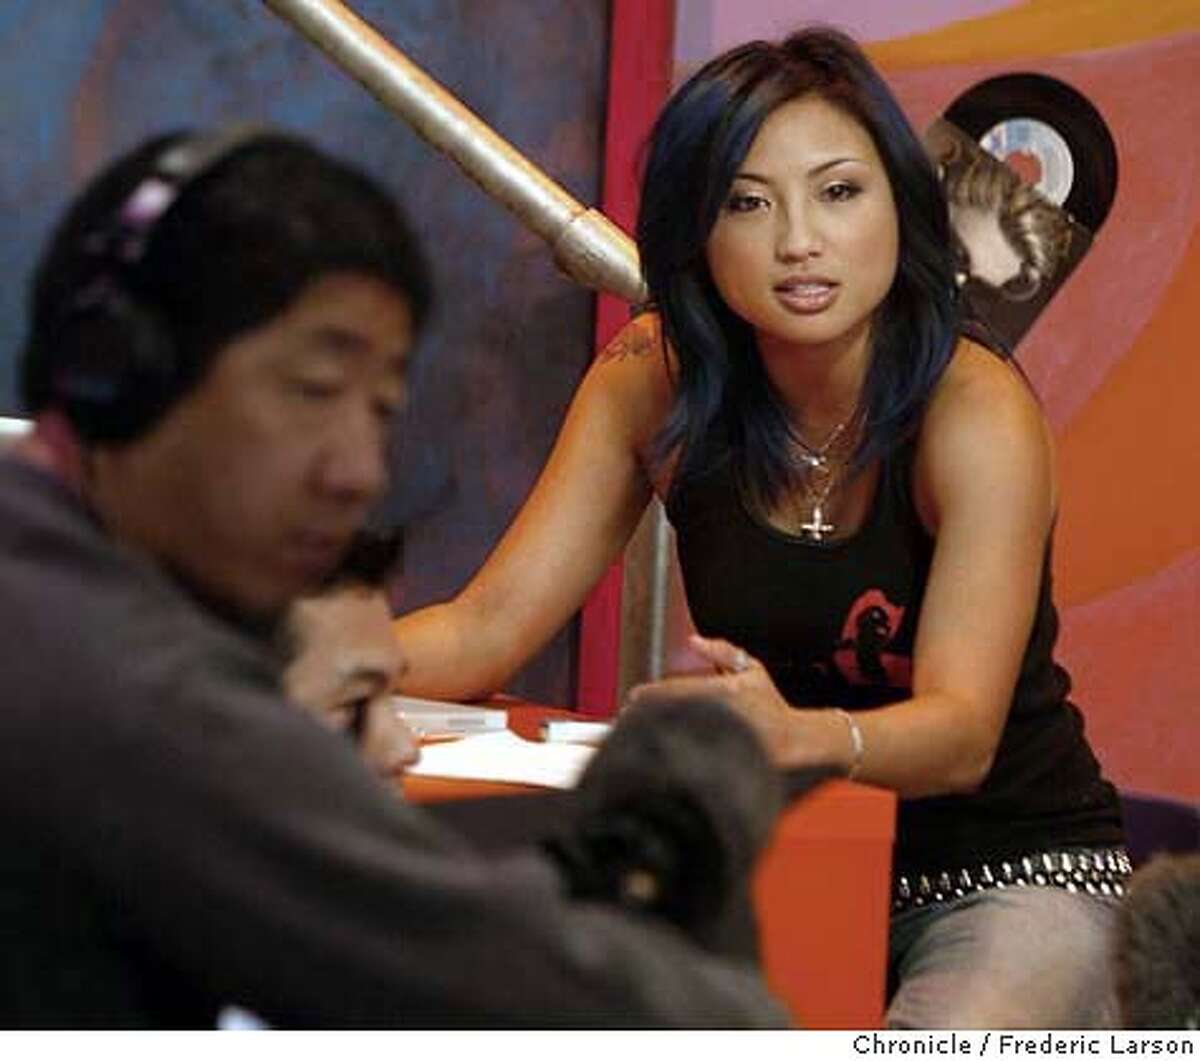 ; Jeannie Mai goes over her lines with the film crew while filming of a new TV show Stir. Stir, a new show appearing on KTSF, features 4 Bay Area Asian American hosts and 2 correspondants, who will report on Asian American affairs -- in English. It's a first for the channel, which has long broadcast shows in other Asian languages -- playing an important role to the immigrant community. Stir is an attempt to reach out the next generation. The first show premiers in the Bay Area on March 5. City:� 2/24/04, in San Francisco, CA. Frederic Larson/The Chronicle;